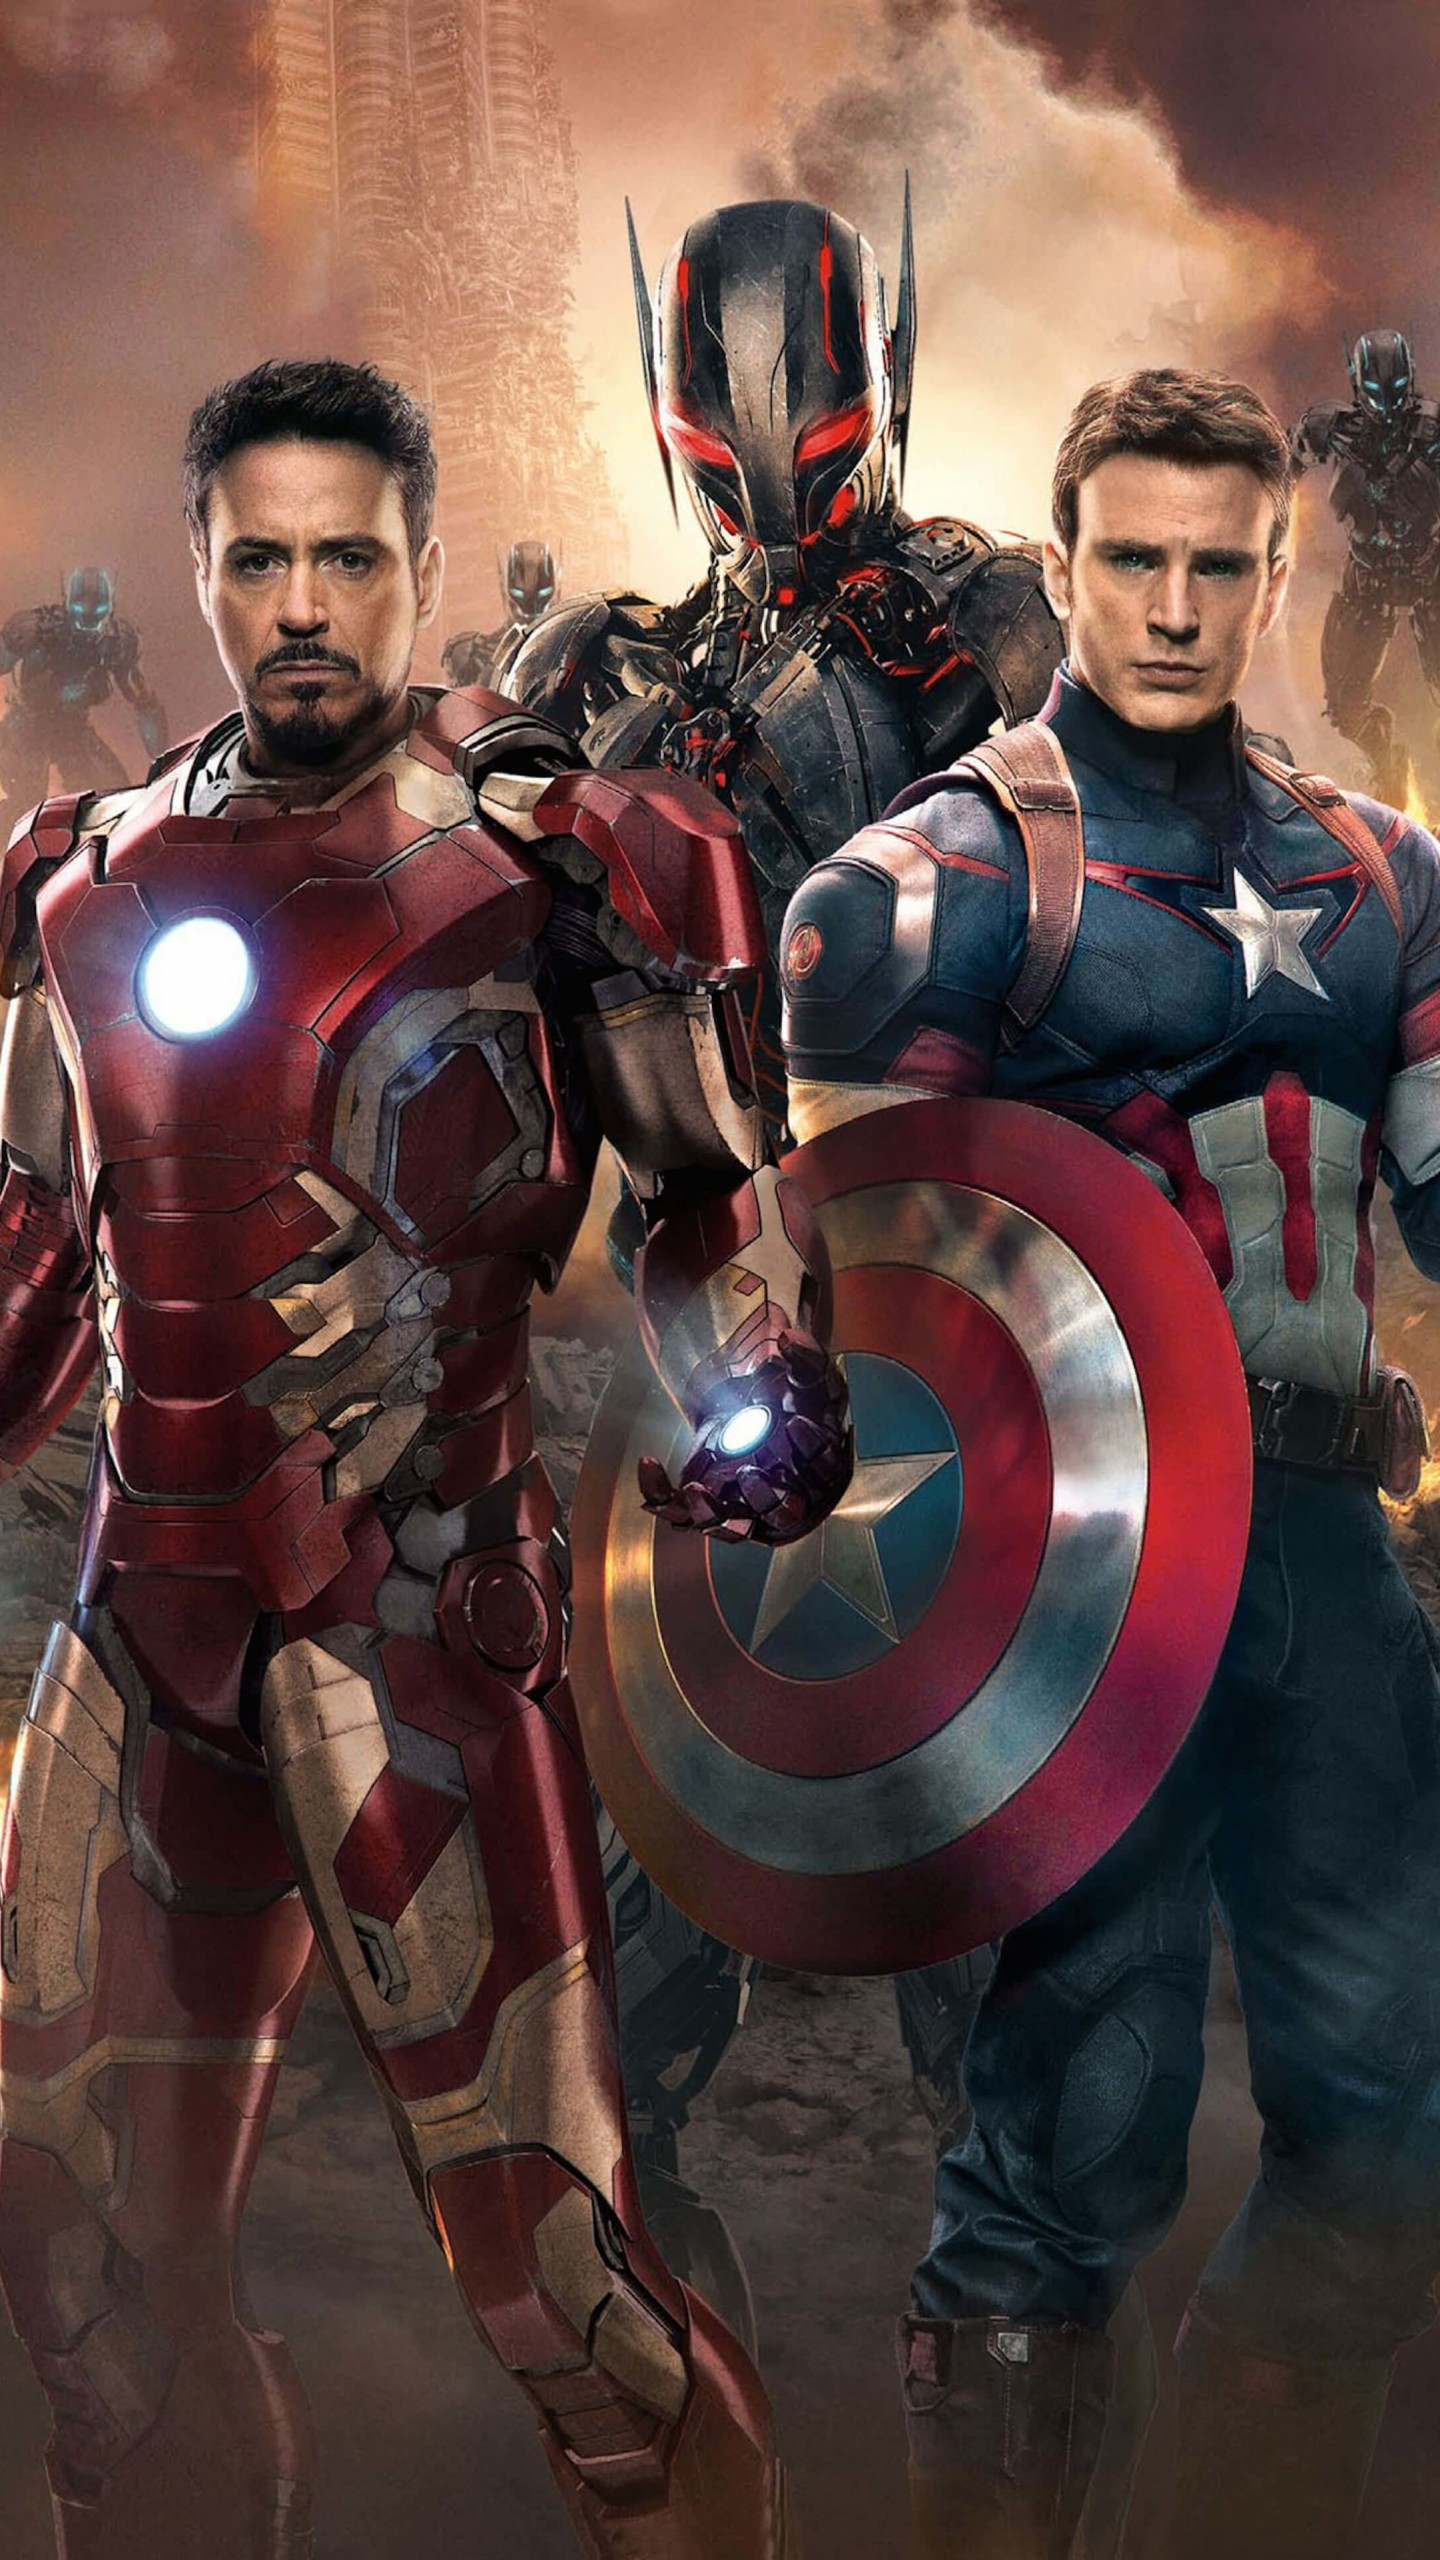 The Avengers: Age of Ultron - Iron Man and Captain America Wallpaper for Google Nexus 6